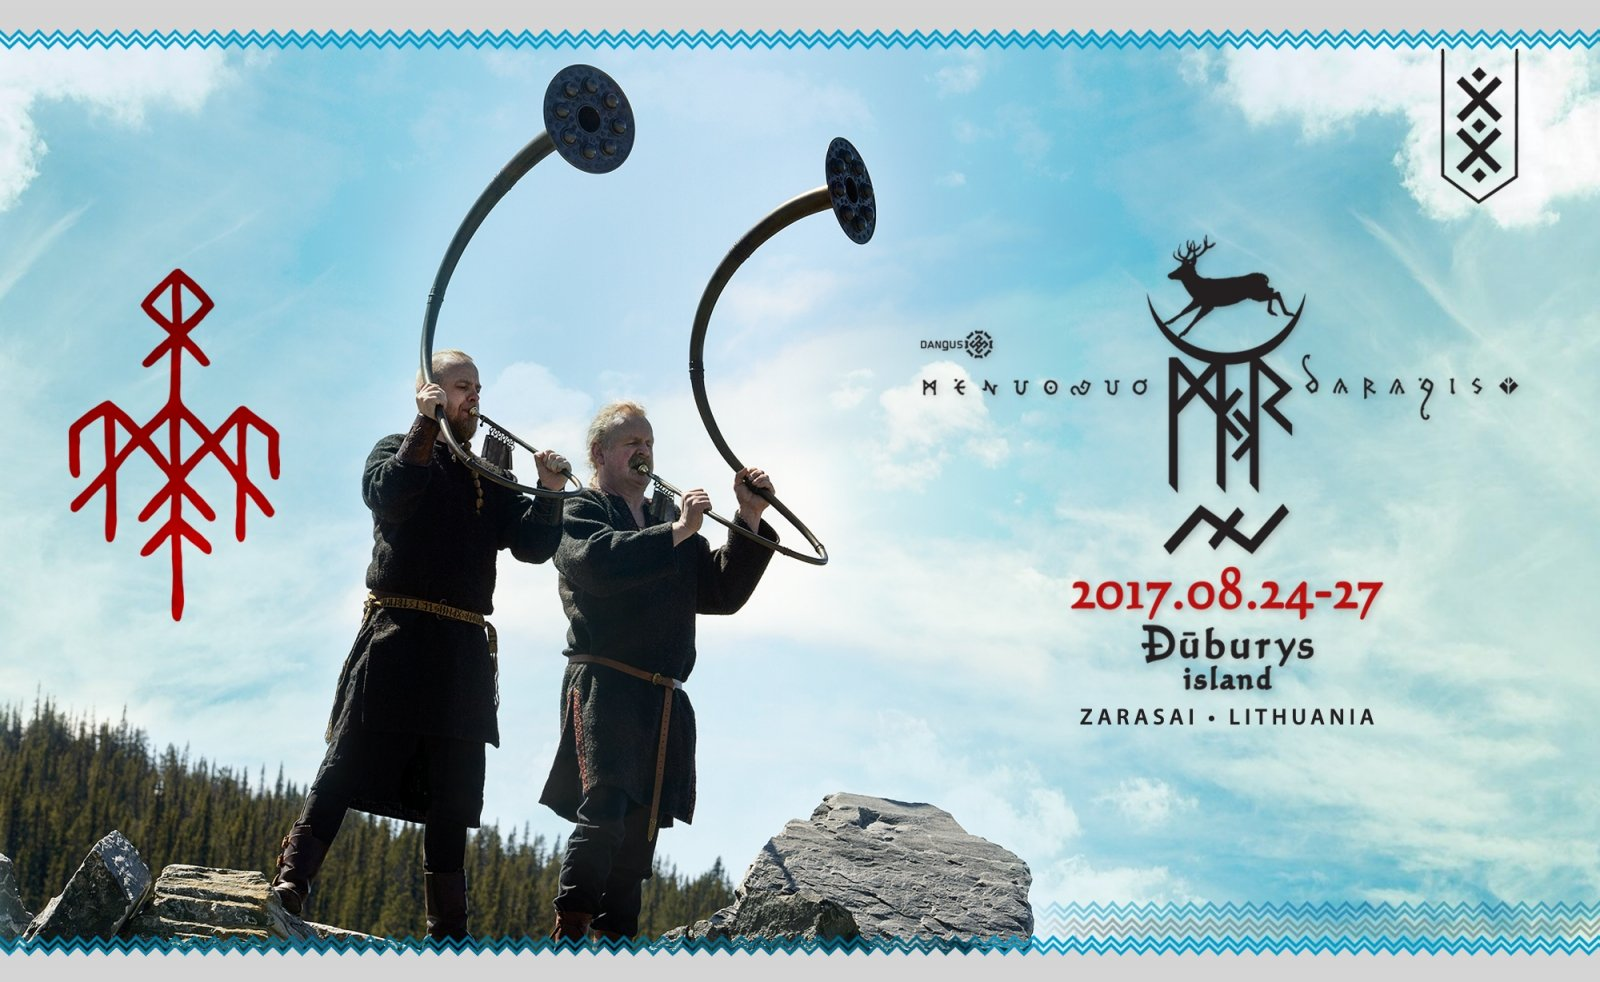 20th fable of Mėnuo Juodaragis tells of God of Thunder and